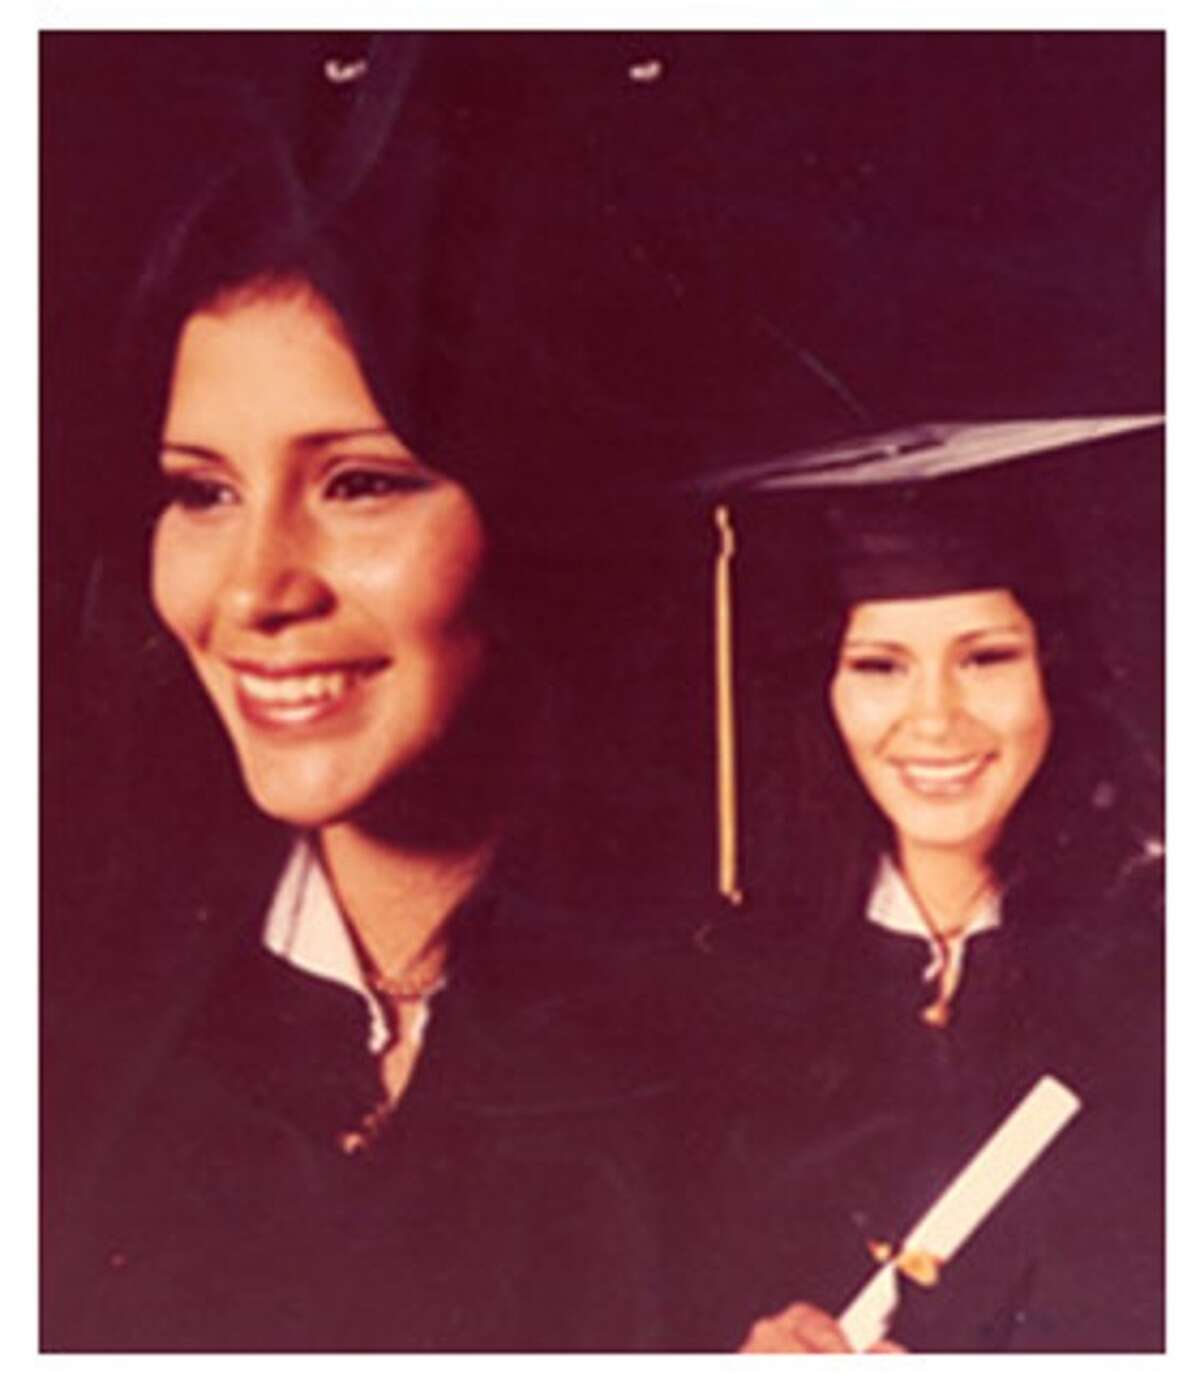 Click ahead to view DPS' cold case files around Central Texas.Carol Joyce Deleon San Antonio On June 4, 1981, an unidentified body of a teenage female was found along Interstate 35 in Comal County. An autopsy later determined the victim died from gunshot wounds. In 2009, through DNA technology, the victim was identified as 18 year old Carol Joyce Deleon.